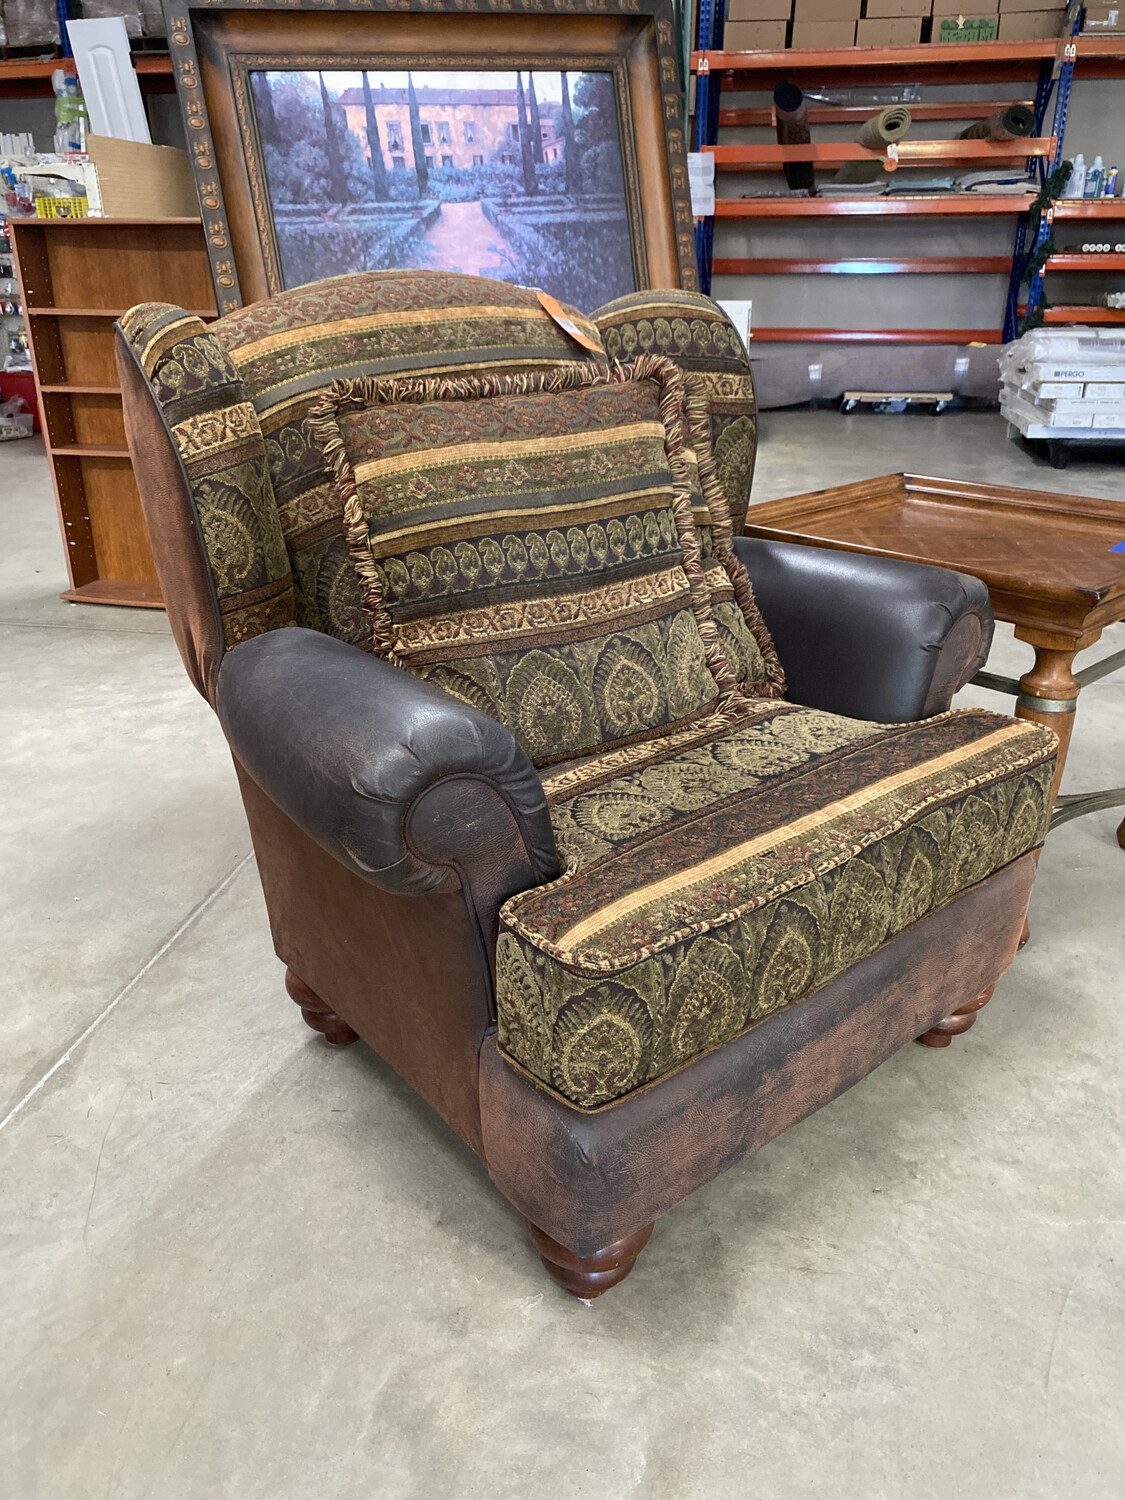 GREEN/BROWN CHAIR WITH PILLOWS